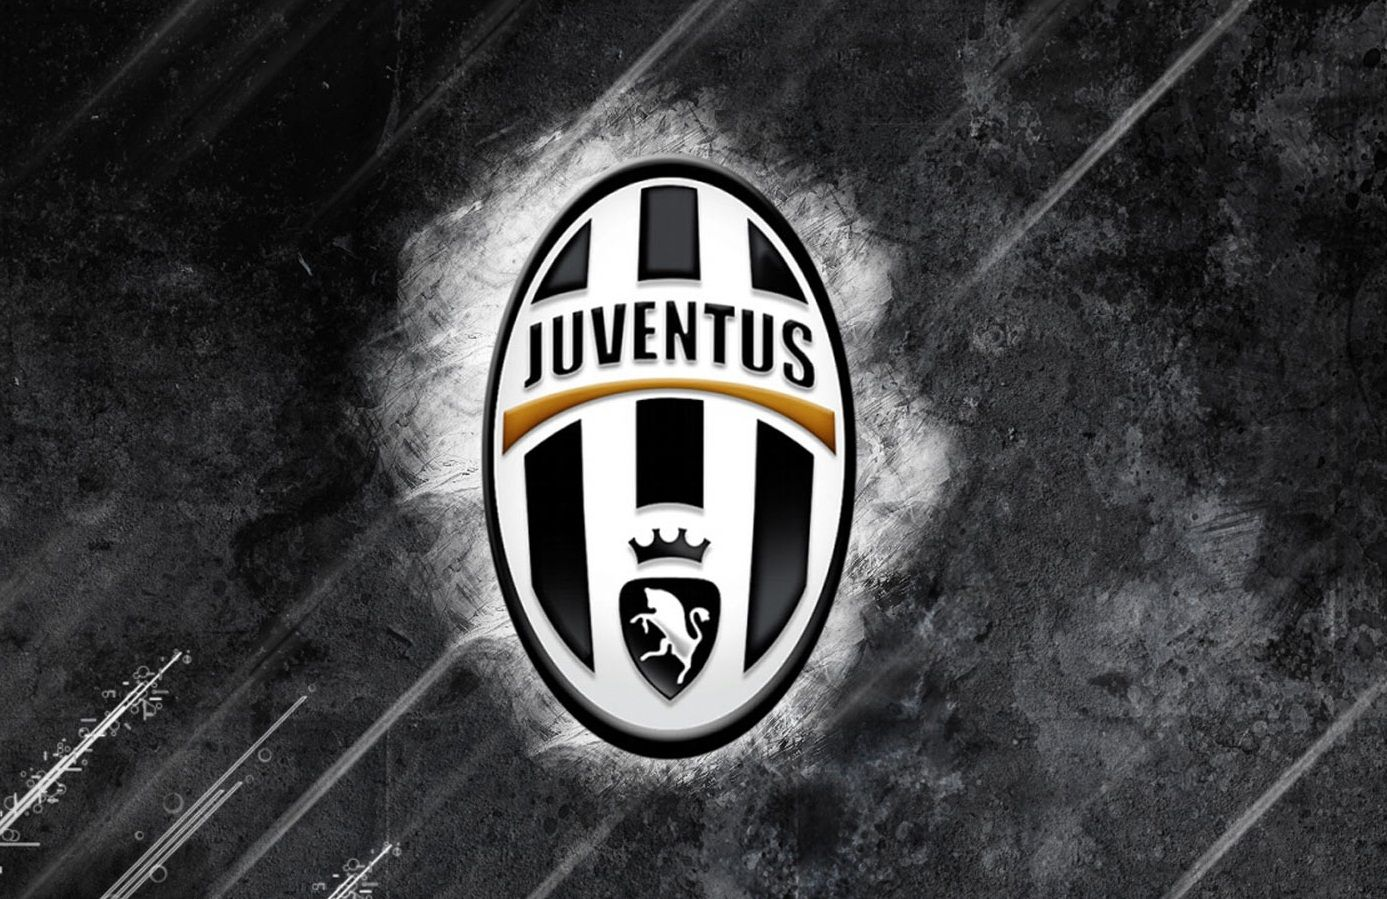 Image for juventus logo hd wallpapers places to visit juventus wallpaper high resolution 2018 is high definition wallpaper voltagebd Image collections